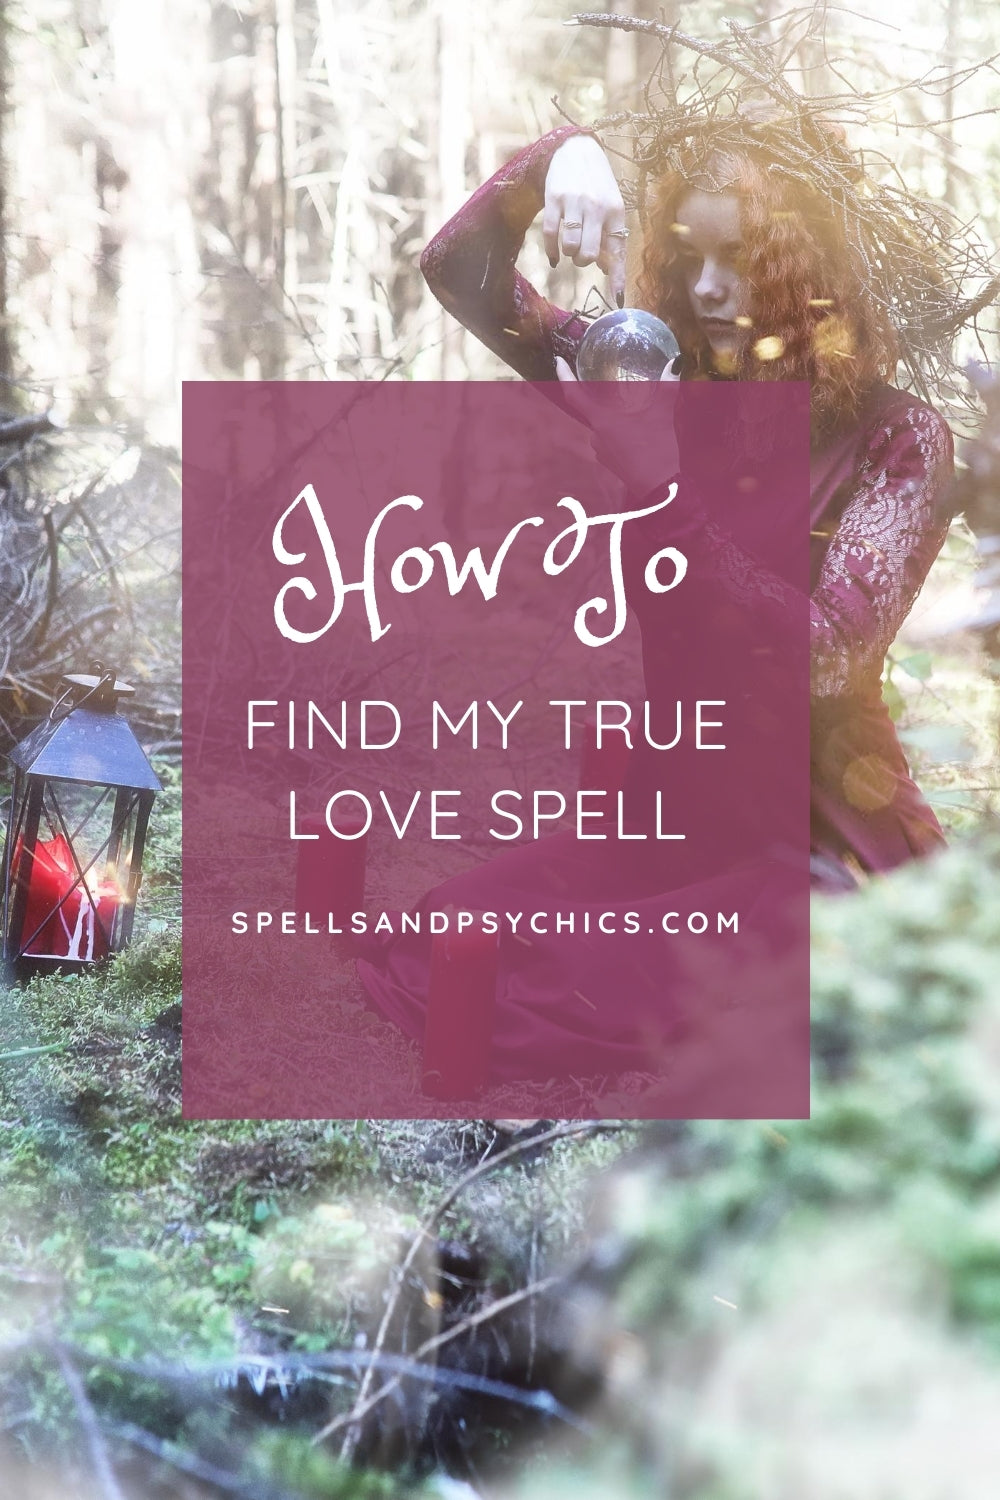 Find my true love spell